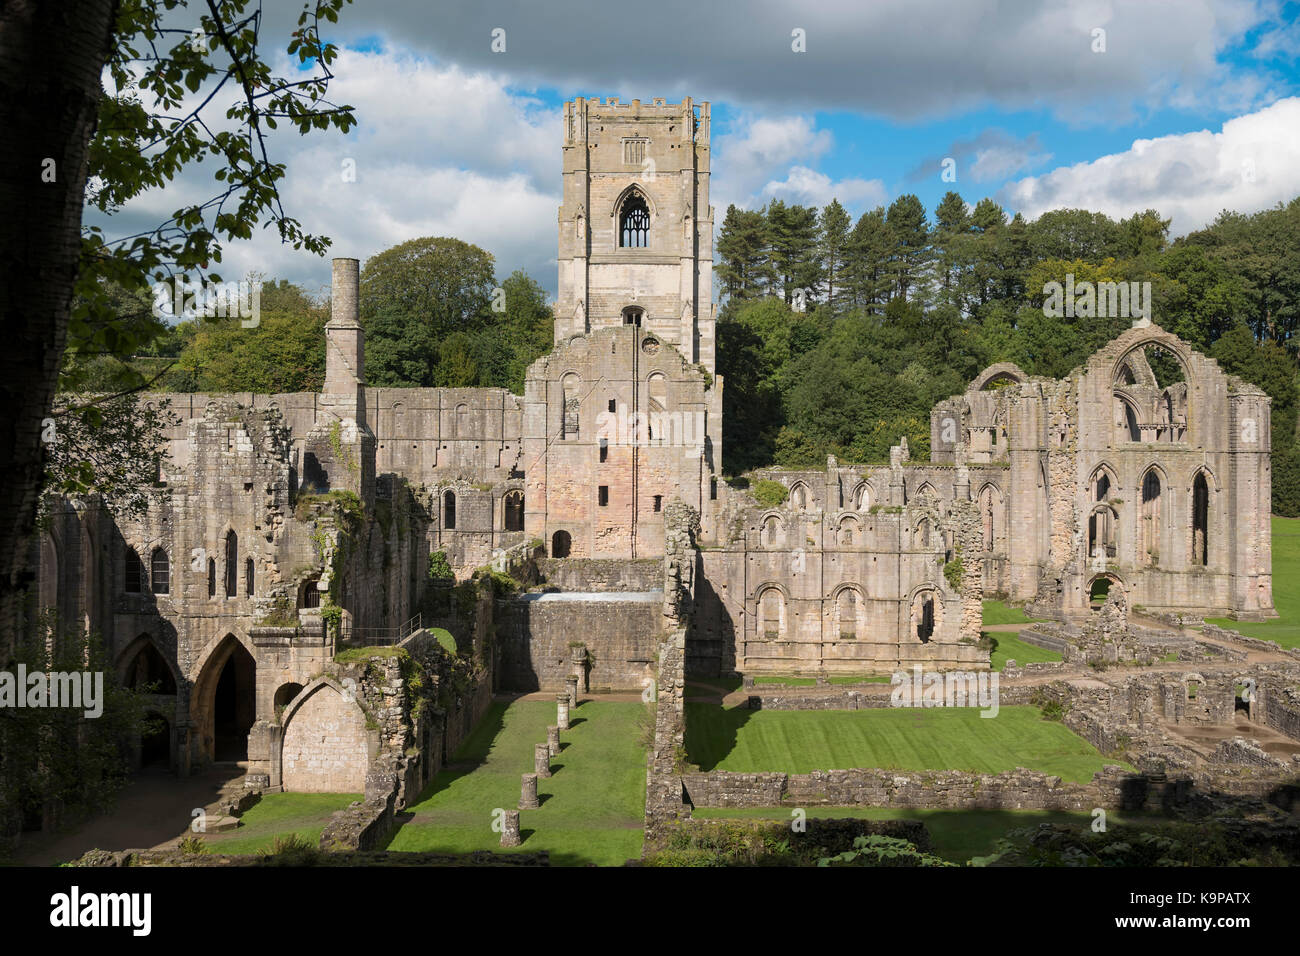 Fountains Abbey, Yorkshire, UK. - Stock Image